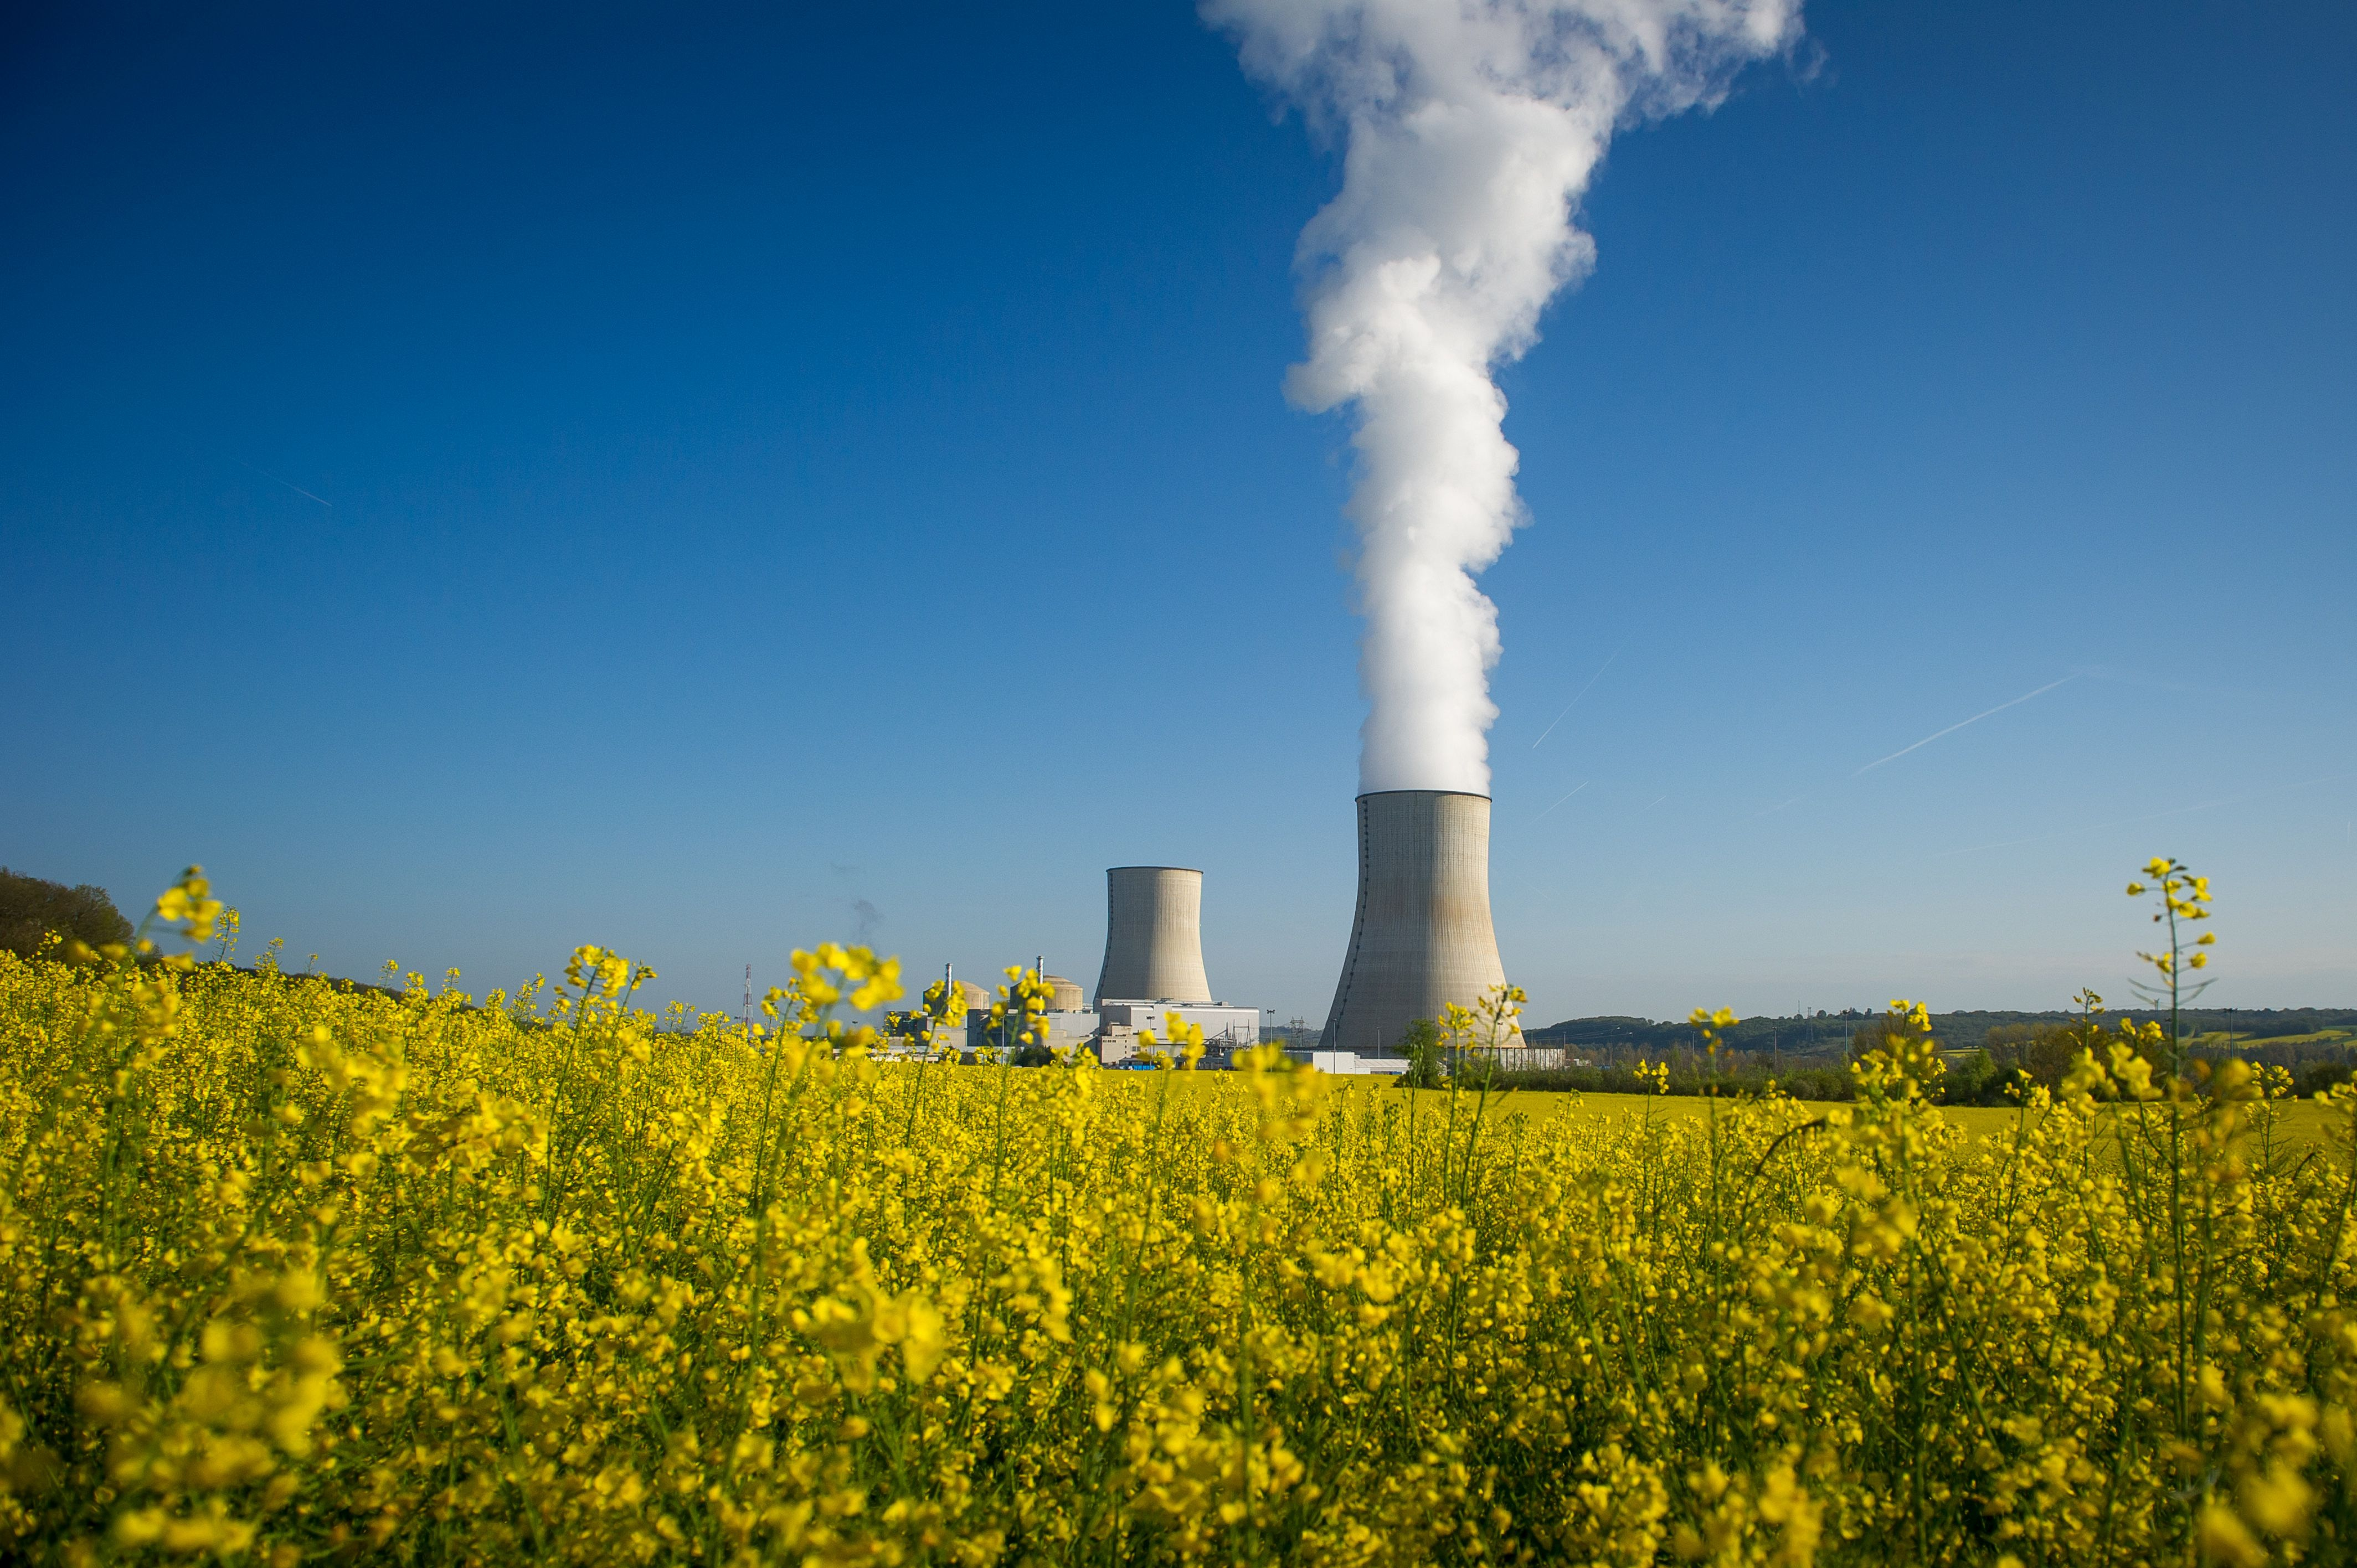 A picture taken on April 25, 2016, shows the two cooling towers of the nuclear power plant of Civaux, seen behind a colza field, in Civaux, central France.